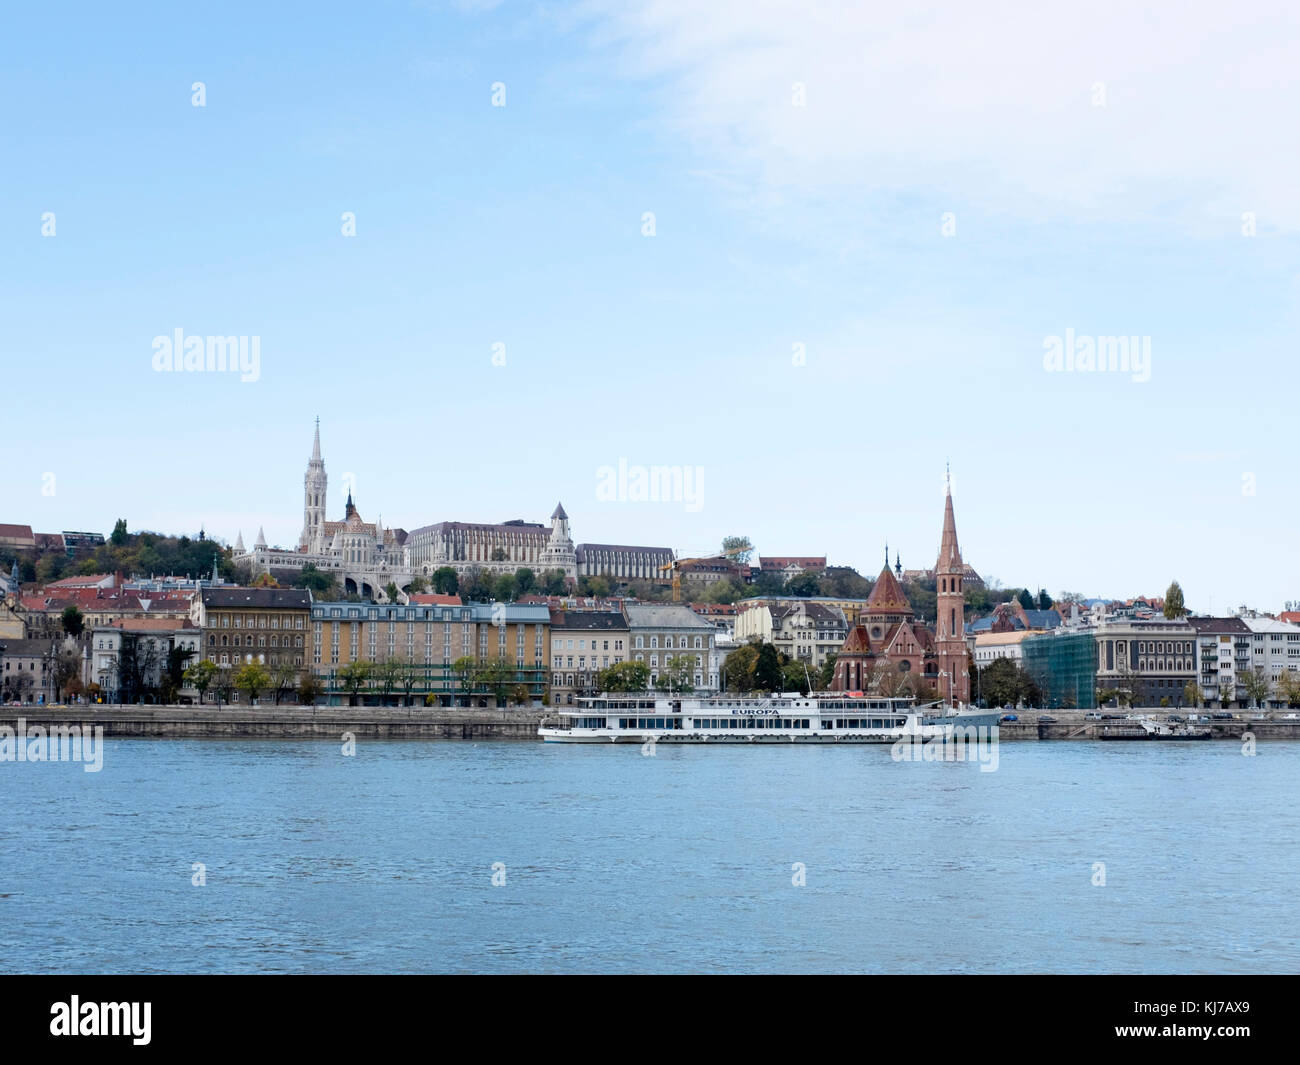 Castle Hill with Fisherman's Bastion, Budapest - Stock Image